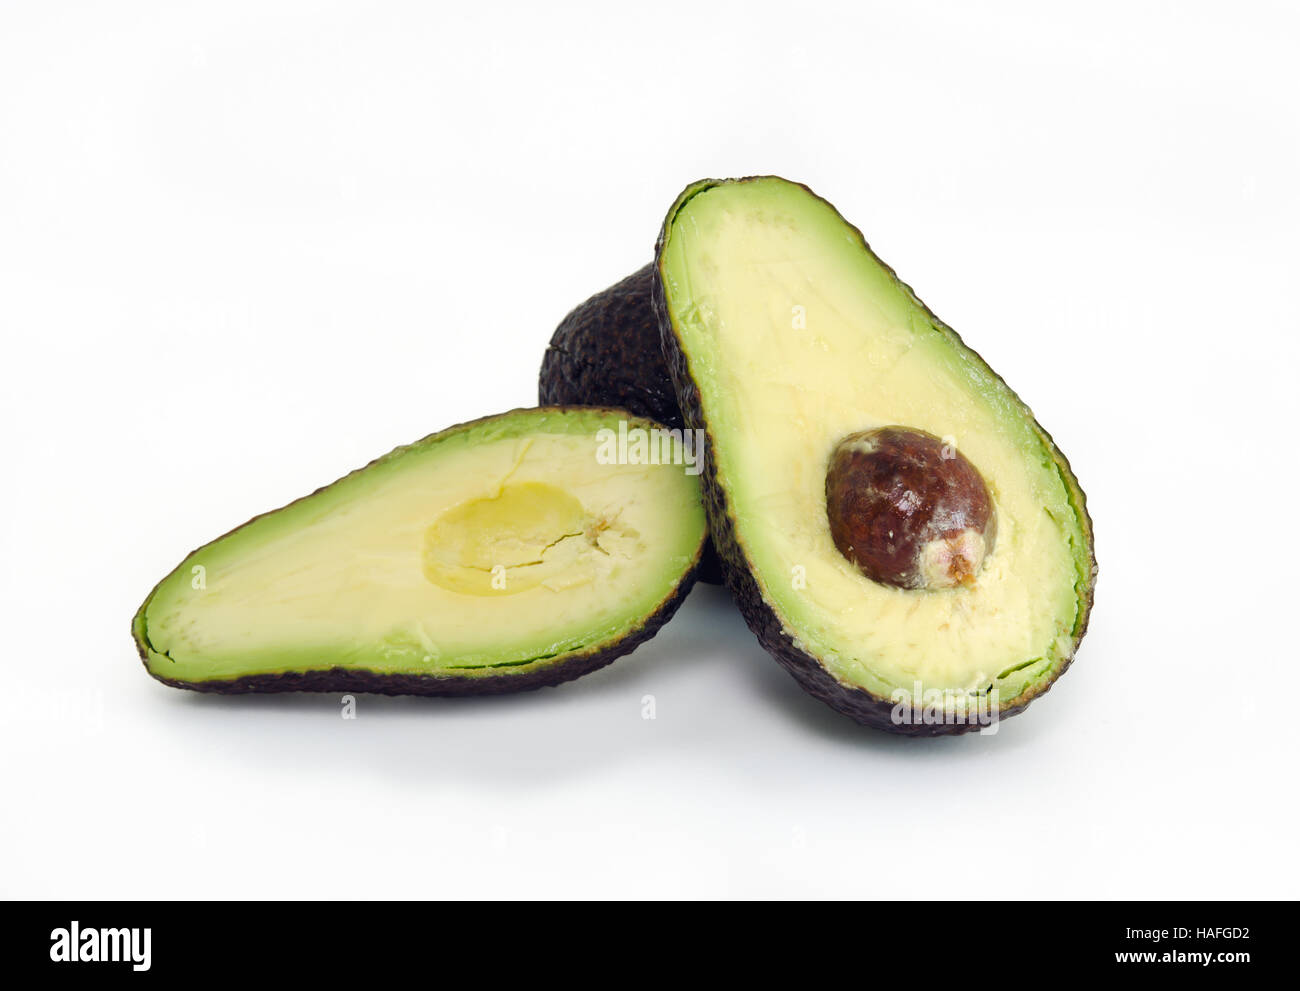 Avocado (Persea Americana, Lauraceae Avocado, Alligator Pear, criollo Obst, Aguacate in Spanisch, Abacate in Portugiesisch Stockbild